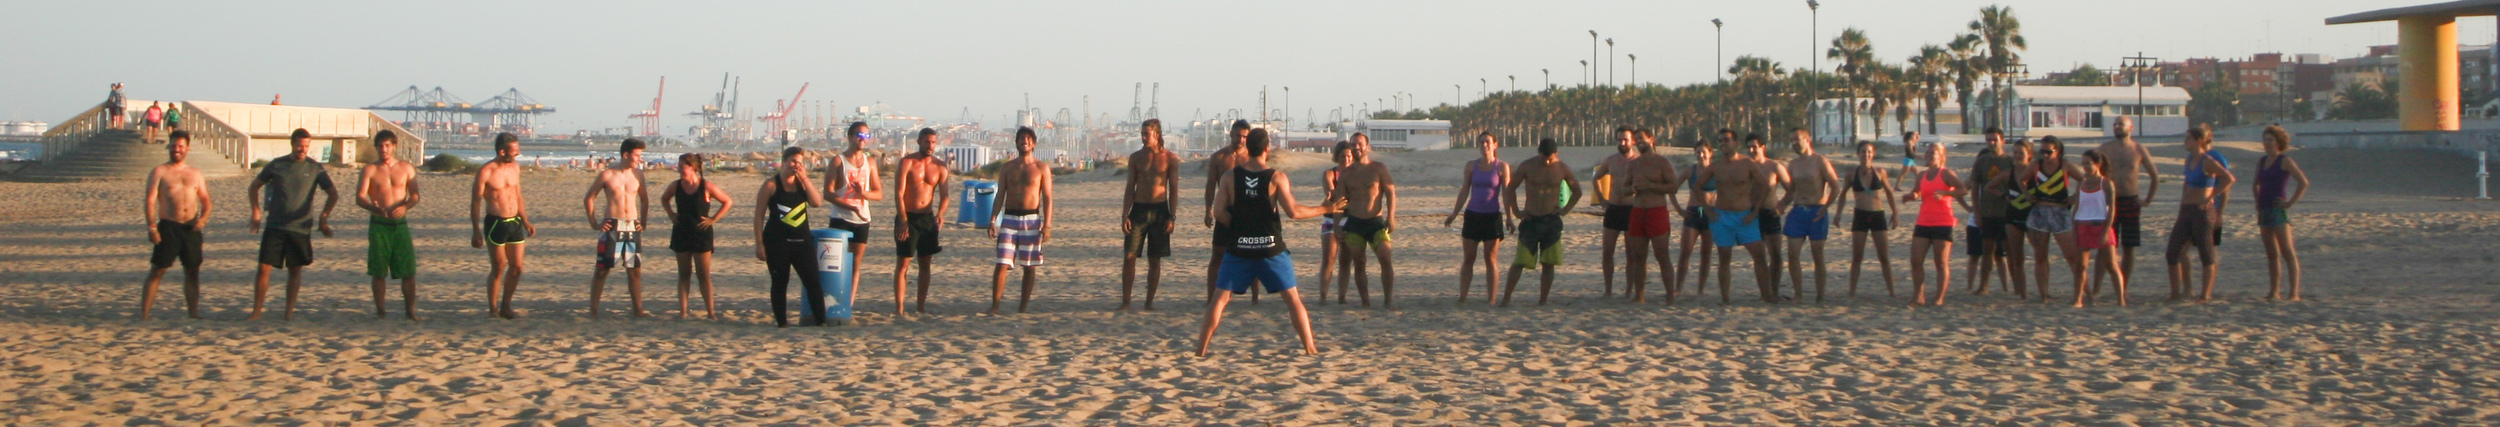 Full_CrossFit_Beach_Wod_V2_2015-22.jpg